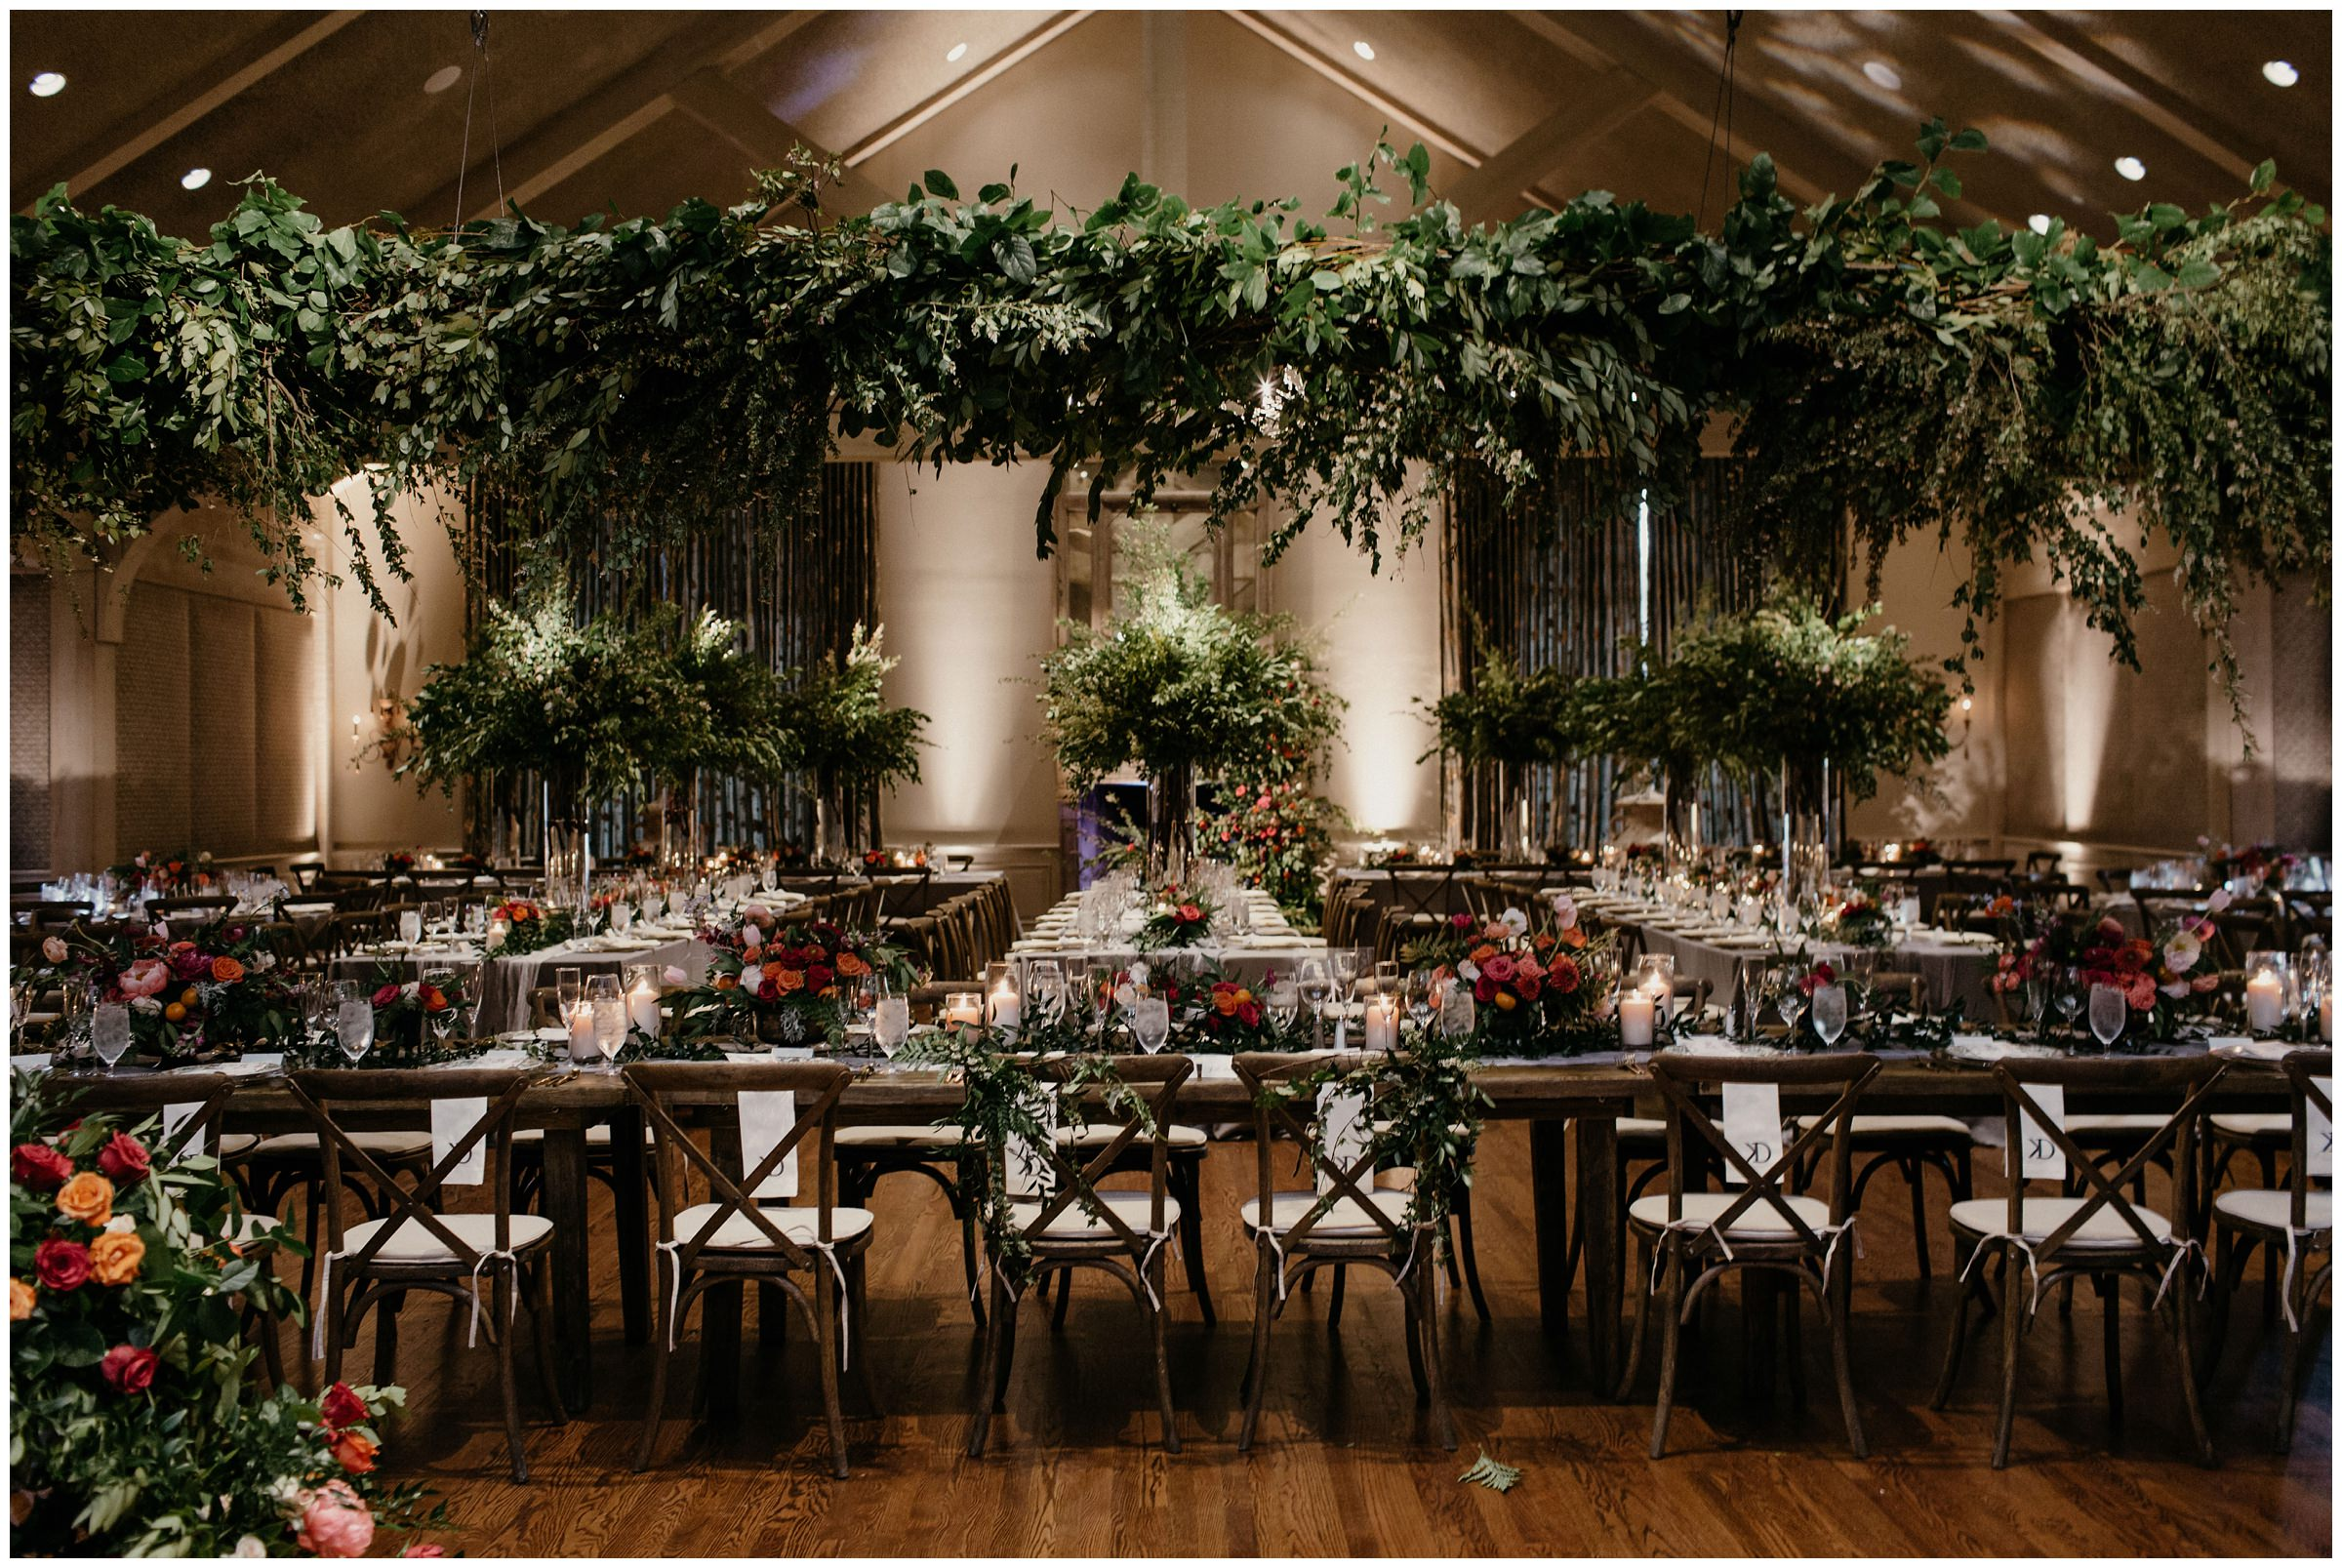 crooked roots floral design at southern hills country club wedding